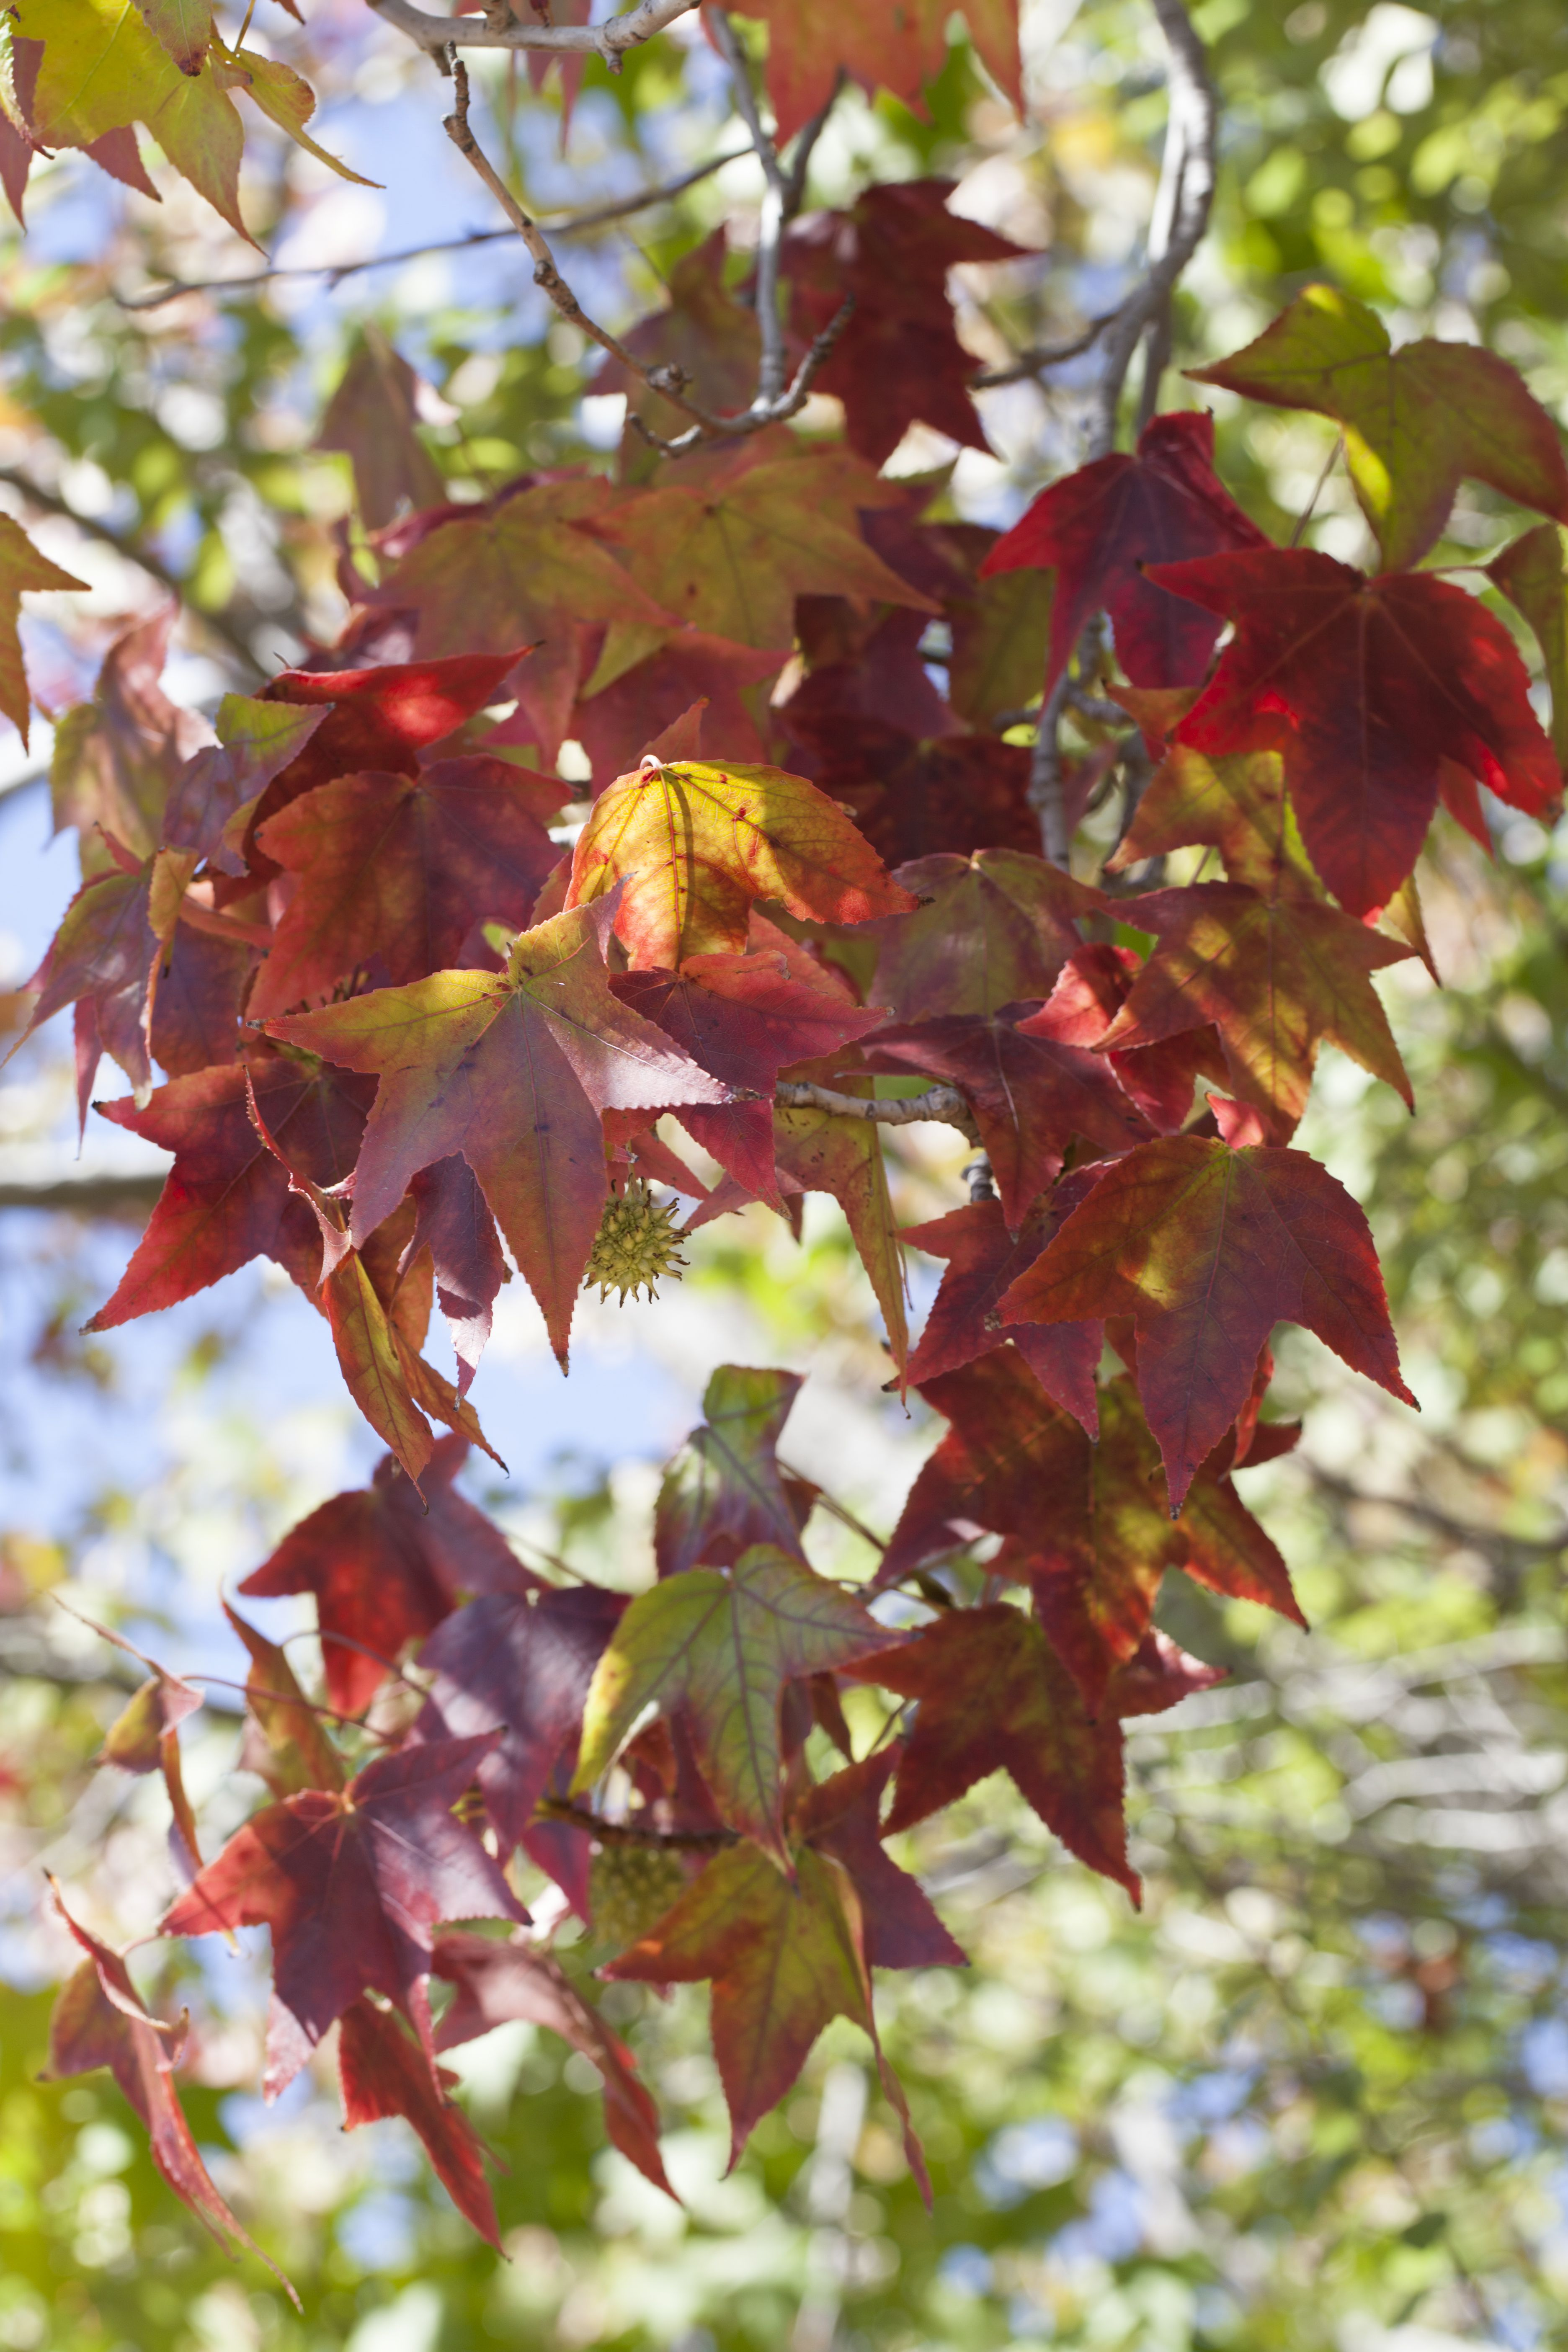 Autumn…a time of inspiration and change